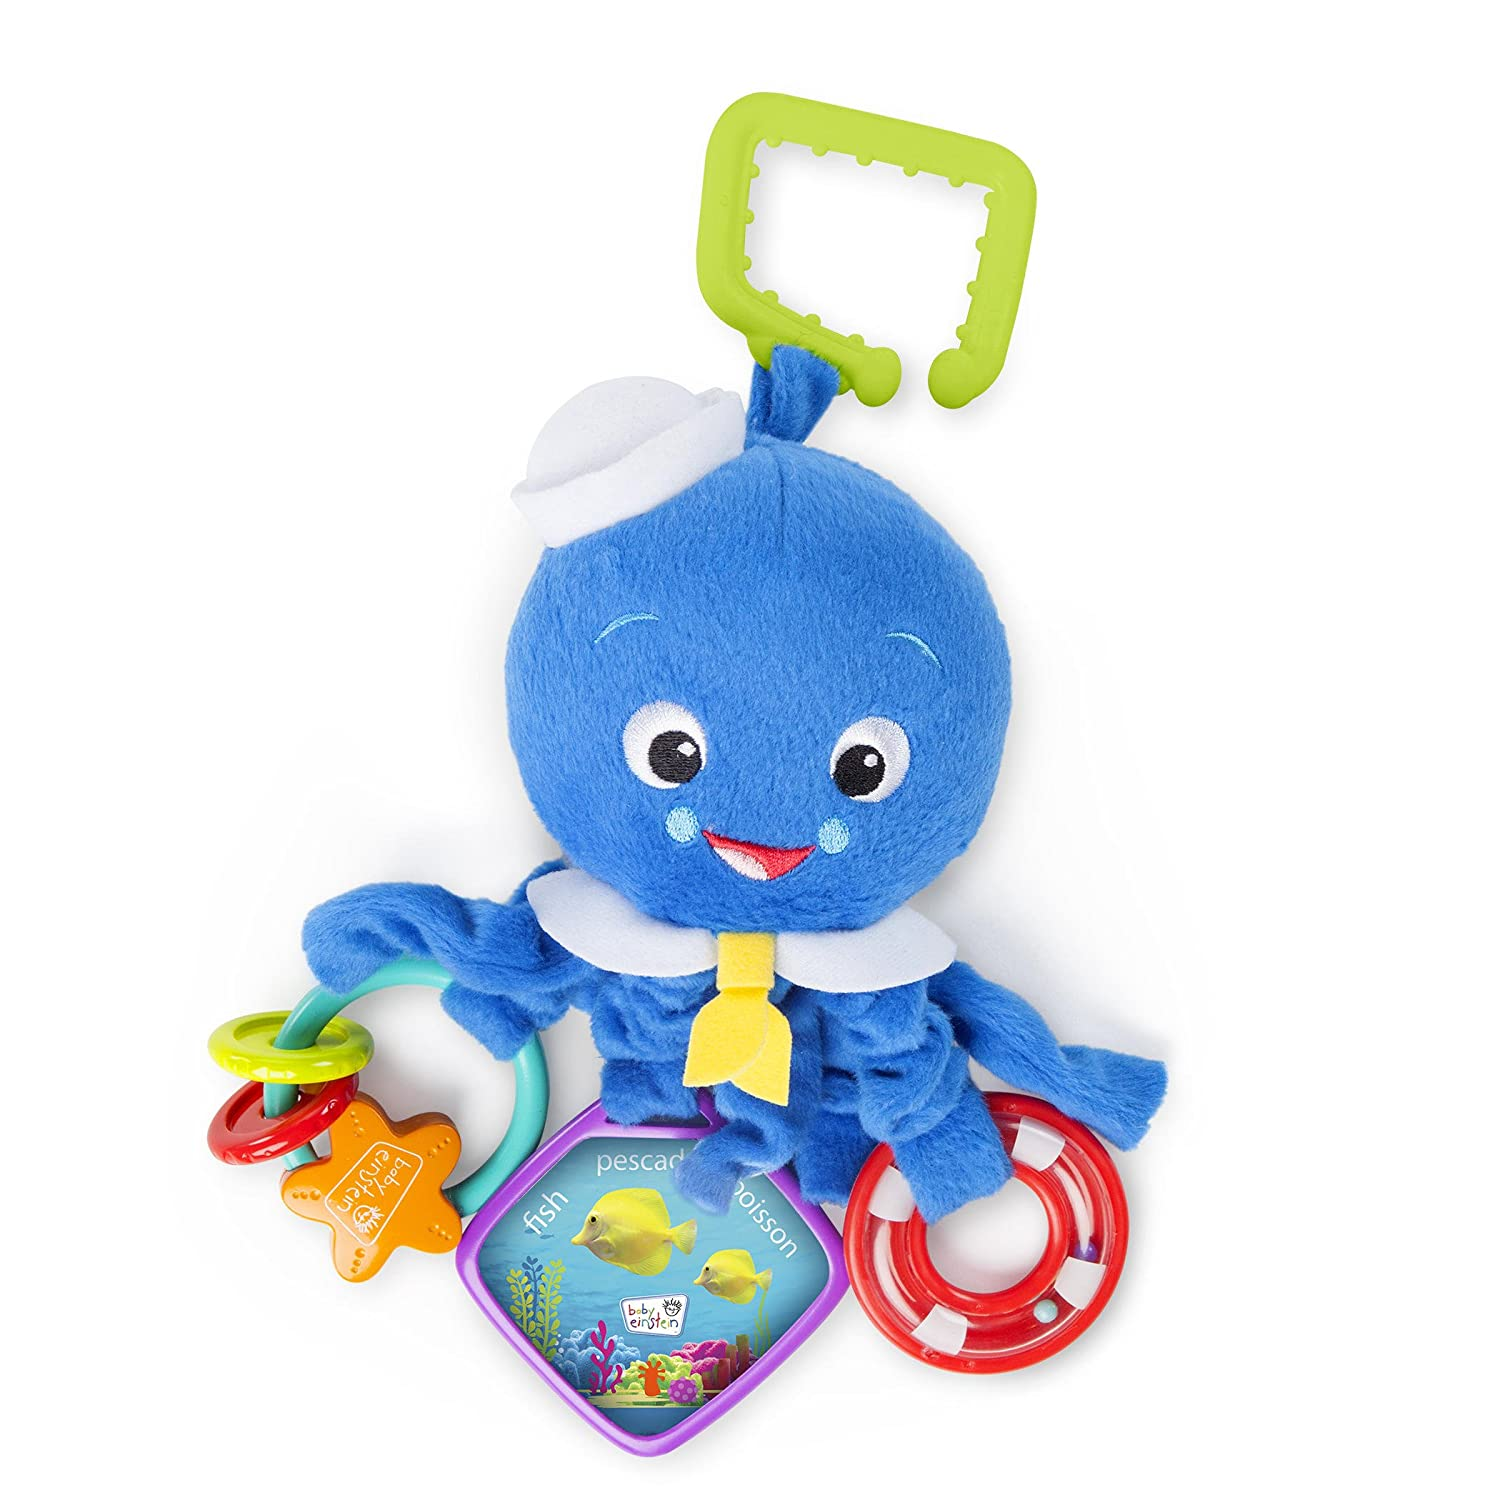 Baby Einstein Activity Arms Toy, Octopus 90664